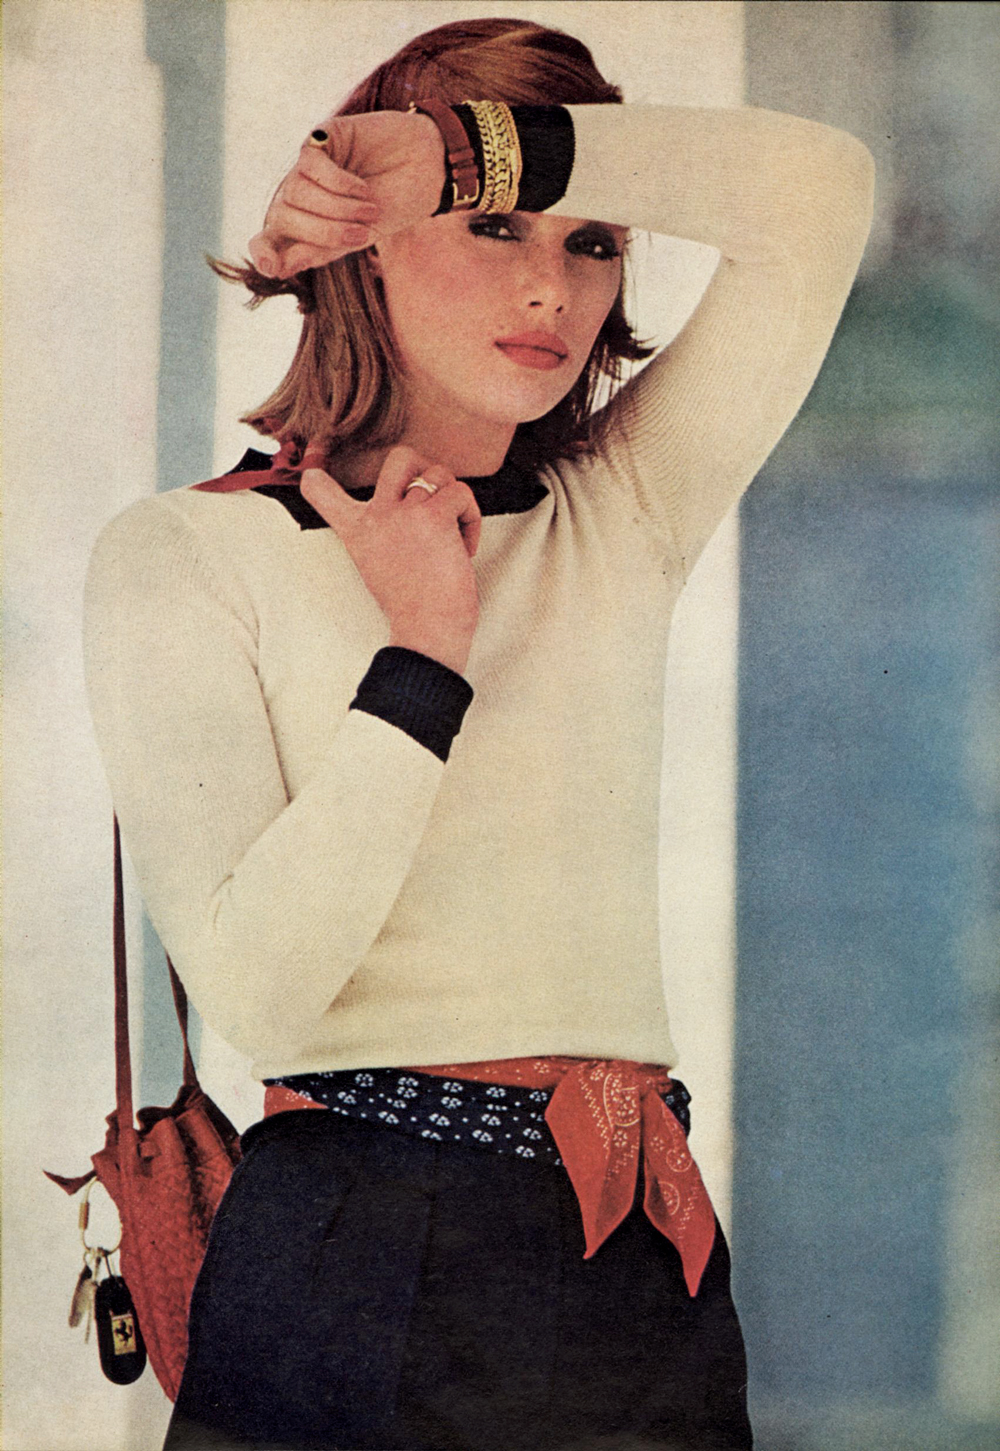 Outfit idea from Vogue 1976 / 1970s style / via fashioned by love british fashion blog